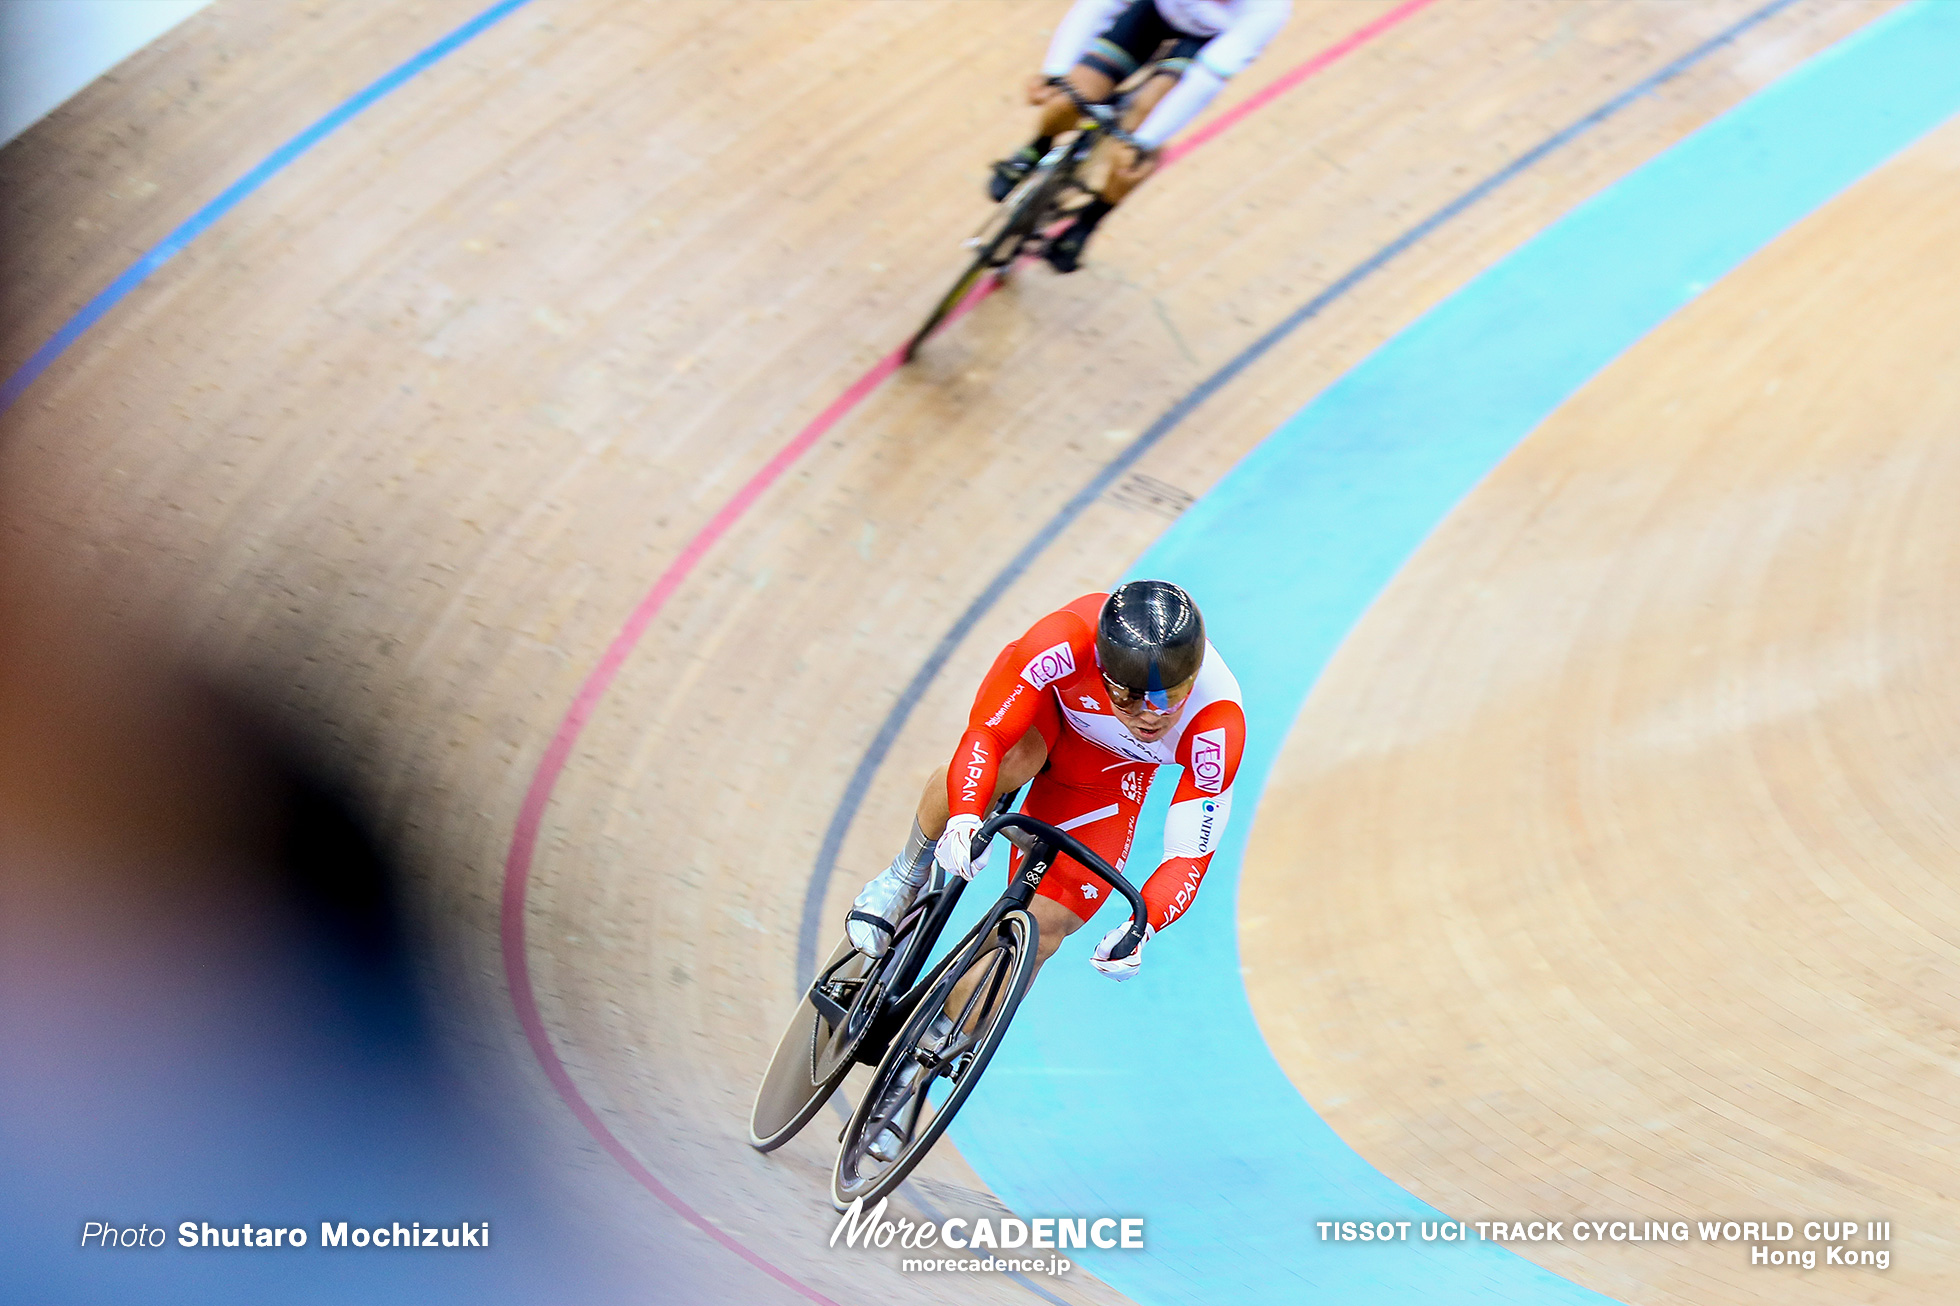 2nd Round / Men's Sprint / TISSOT UCI TRACK CYCLING WORLD CUP III, Hong Kong